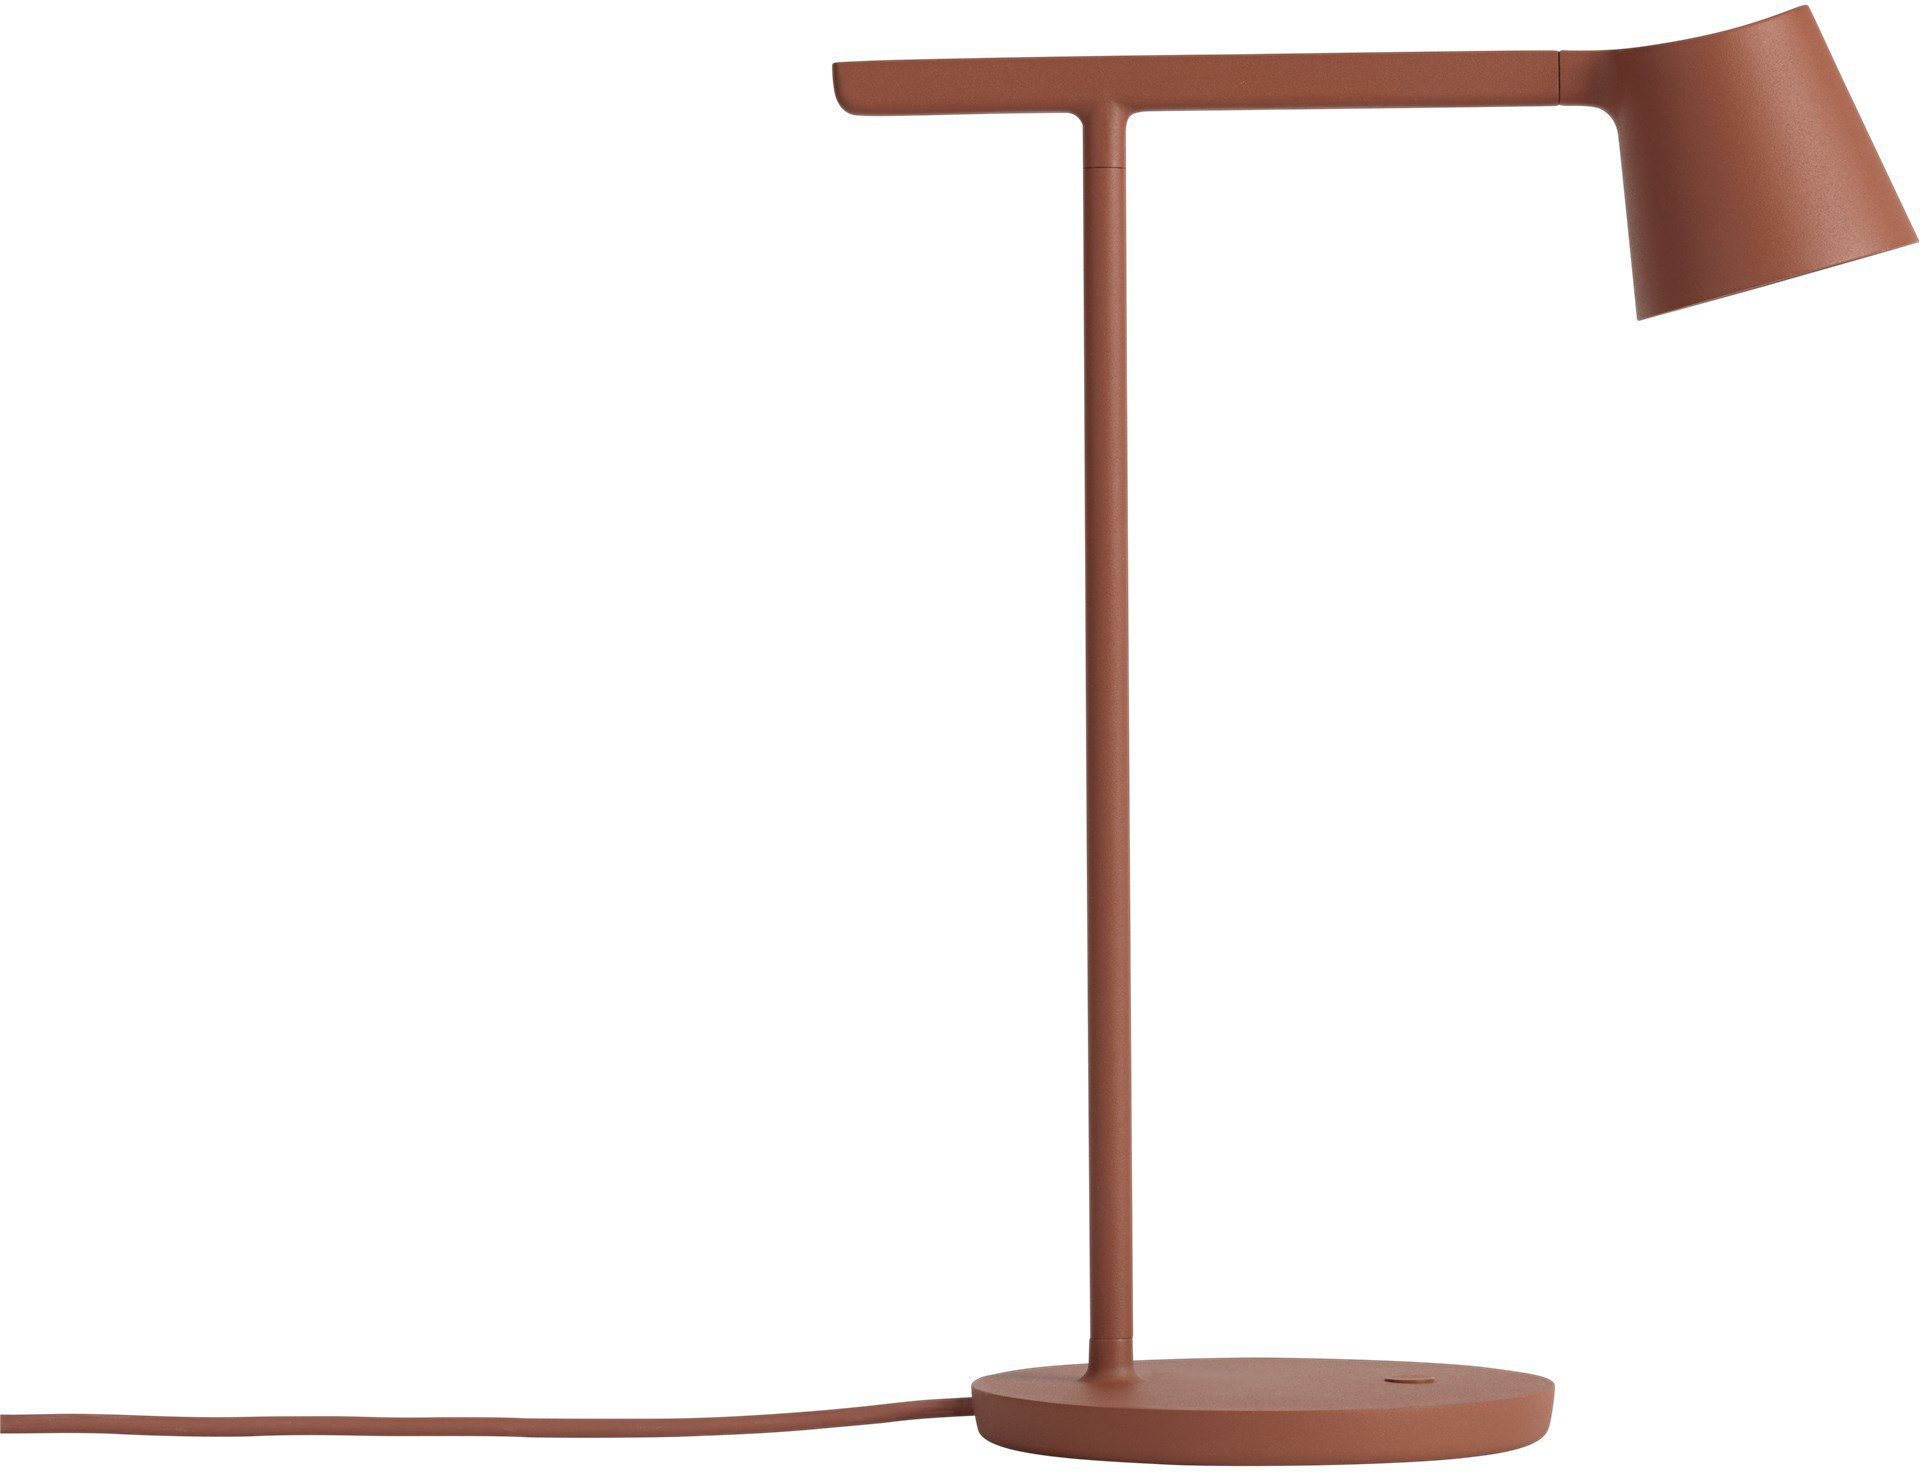 Tip Desk Lamp Copper Brown by J. Fager for Muuto